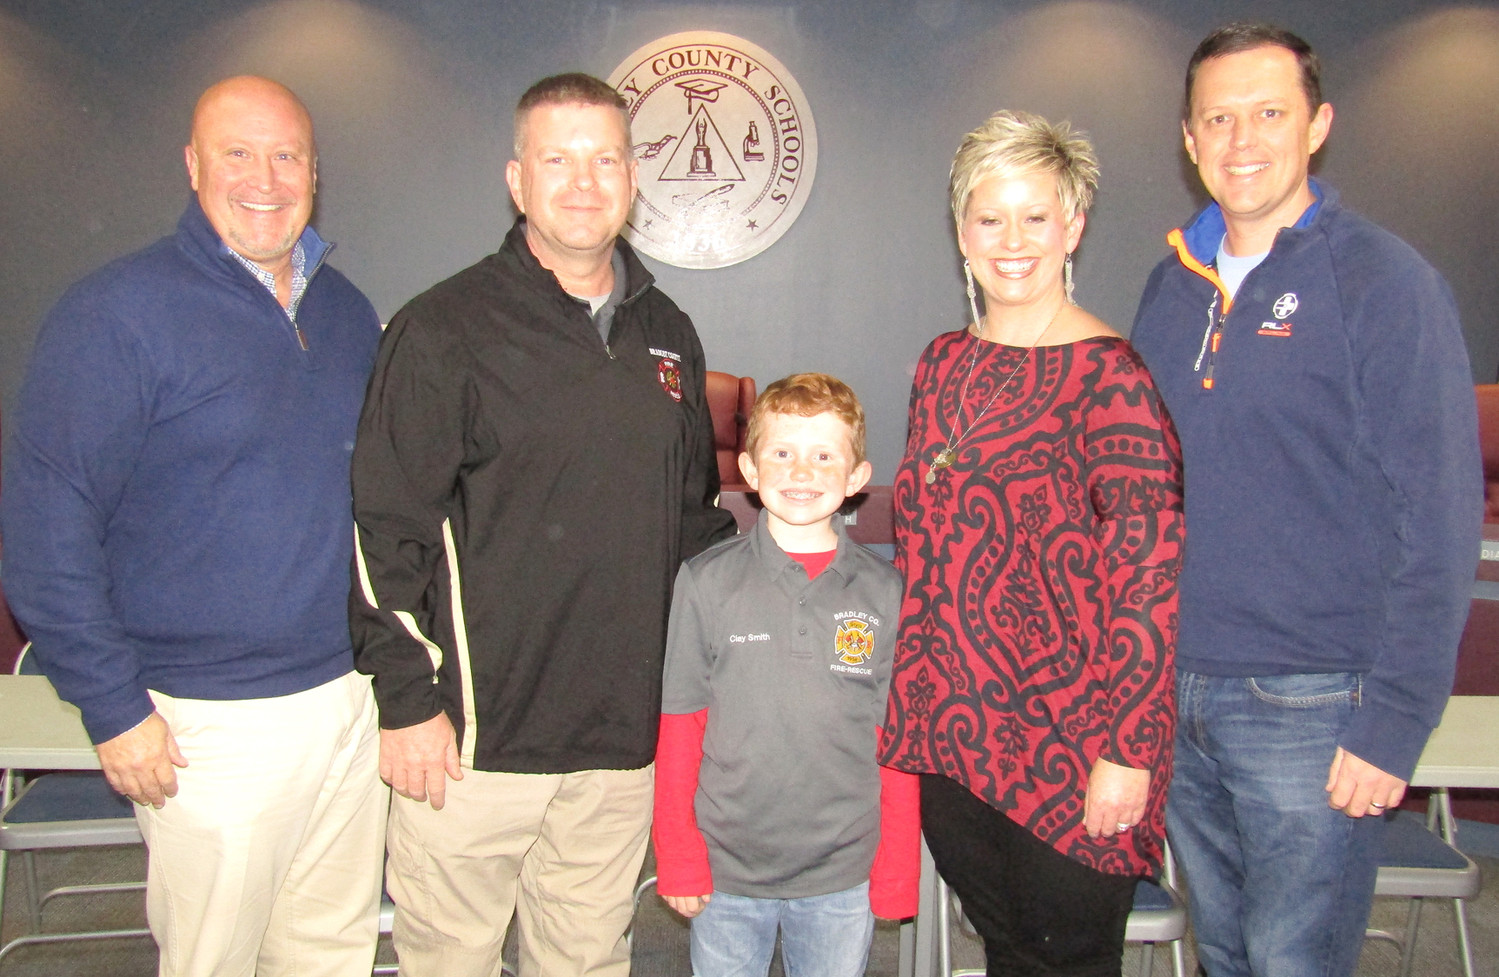 CLAY SMITH, center, a student at Michigan Avenue Elementary School, served as 'Fire Chief for a Day' with the Bradley County EMS. Standing with him are, from left, EMS Committee Chairman Commissioner Johnny Mull, EMS Director Shawn Fairbanks, Smith, and his parents, Rachelle and Spencer Smith.